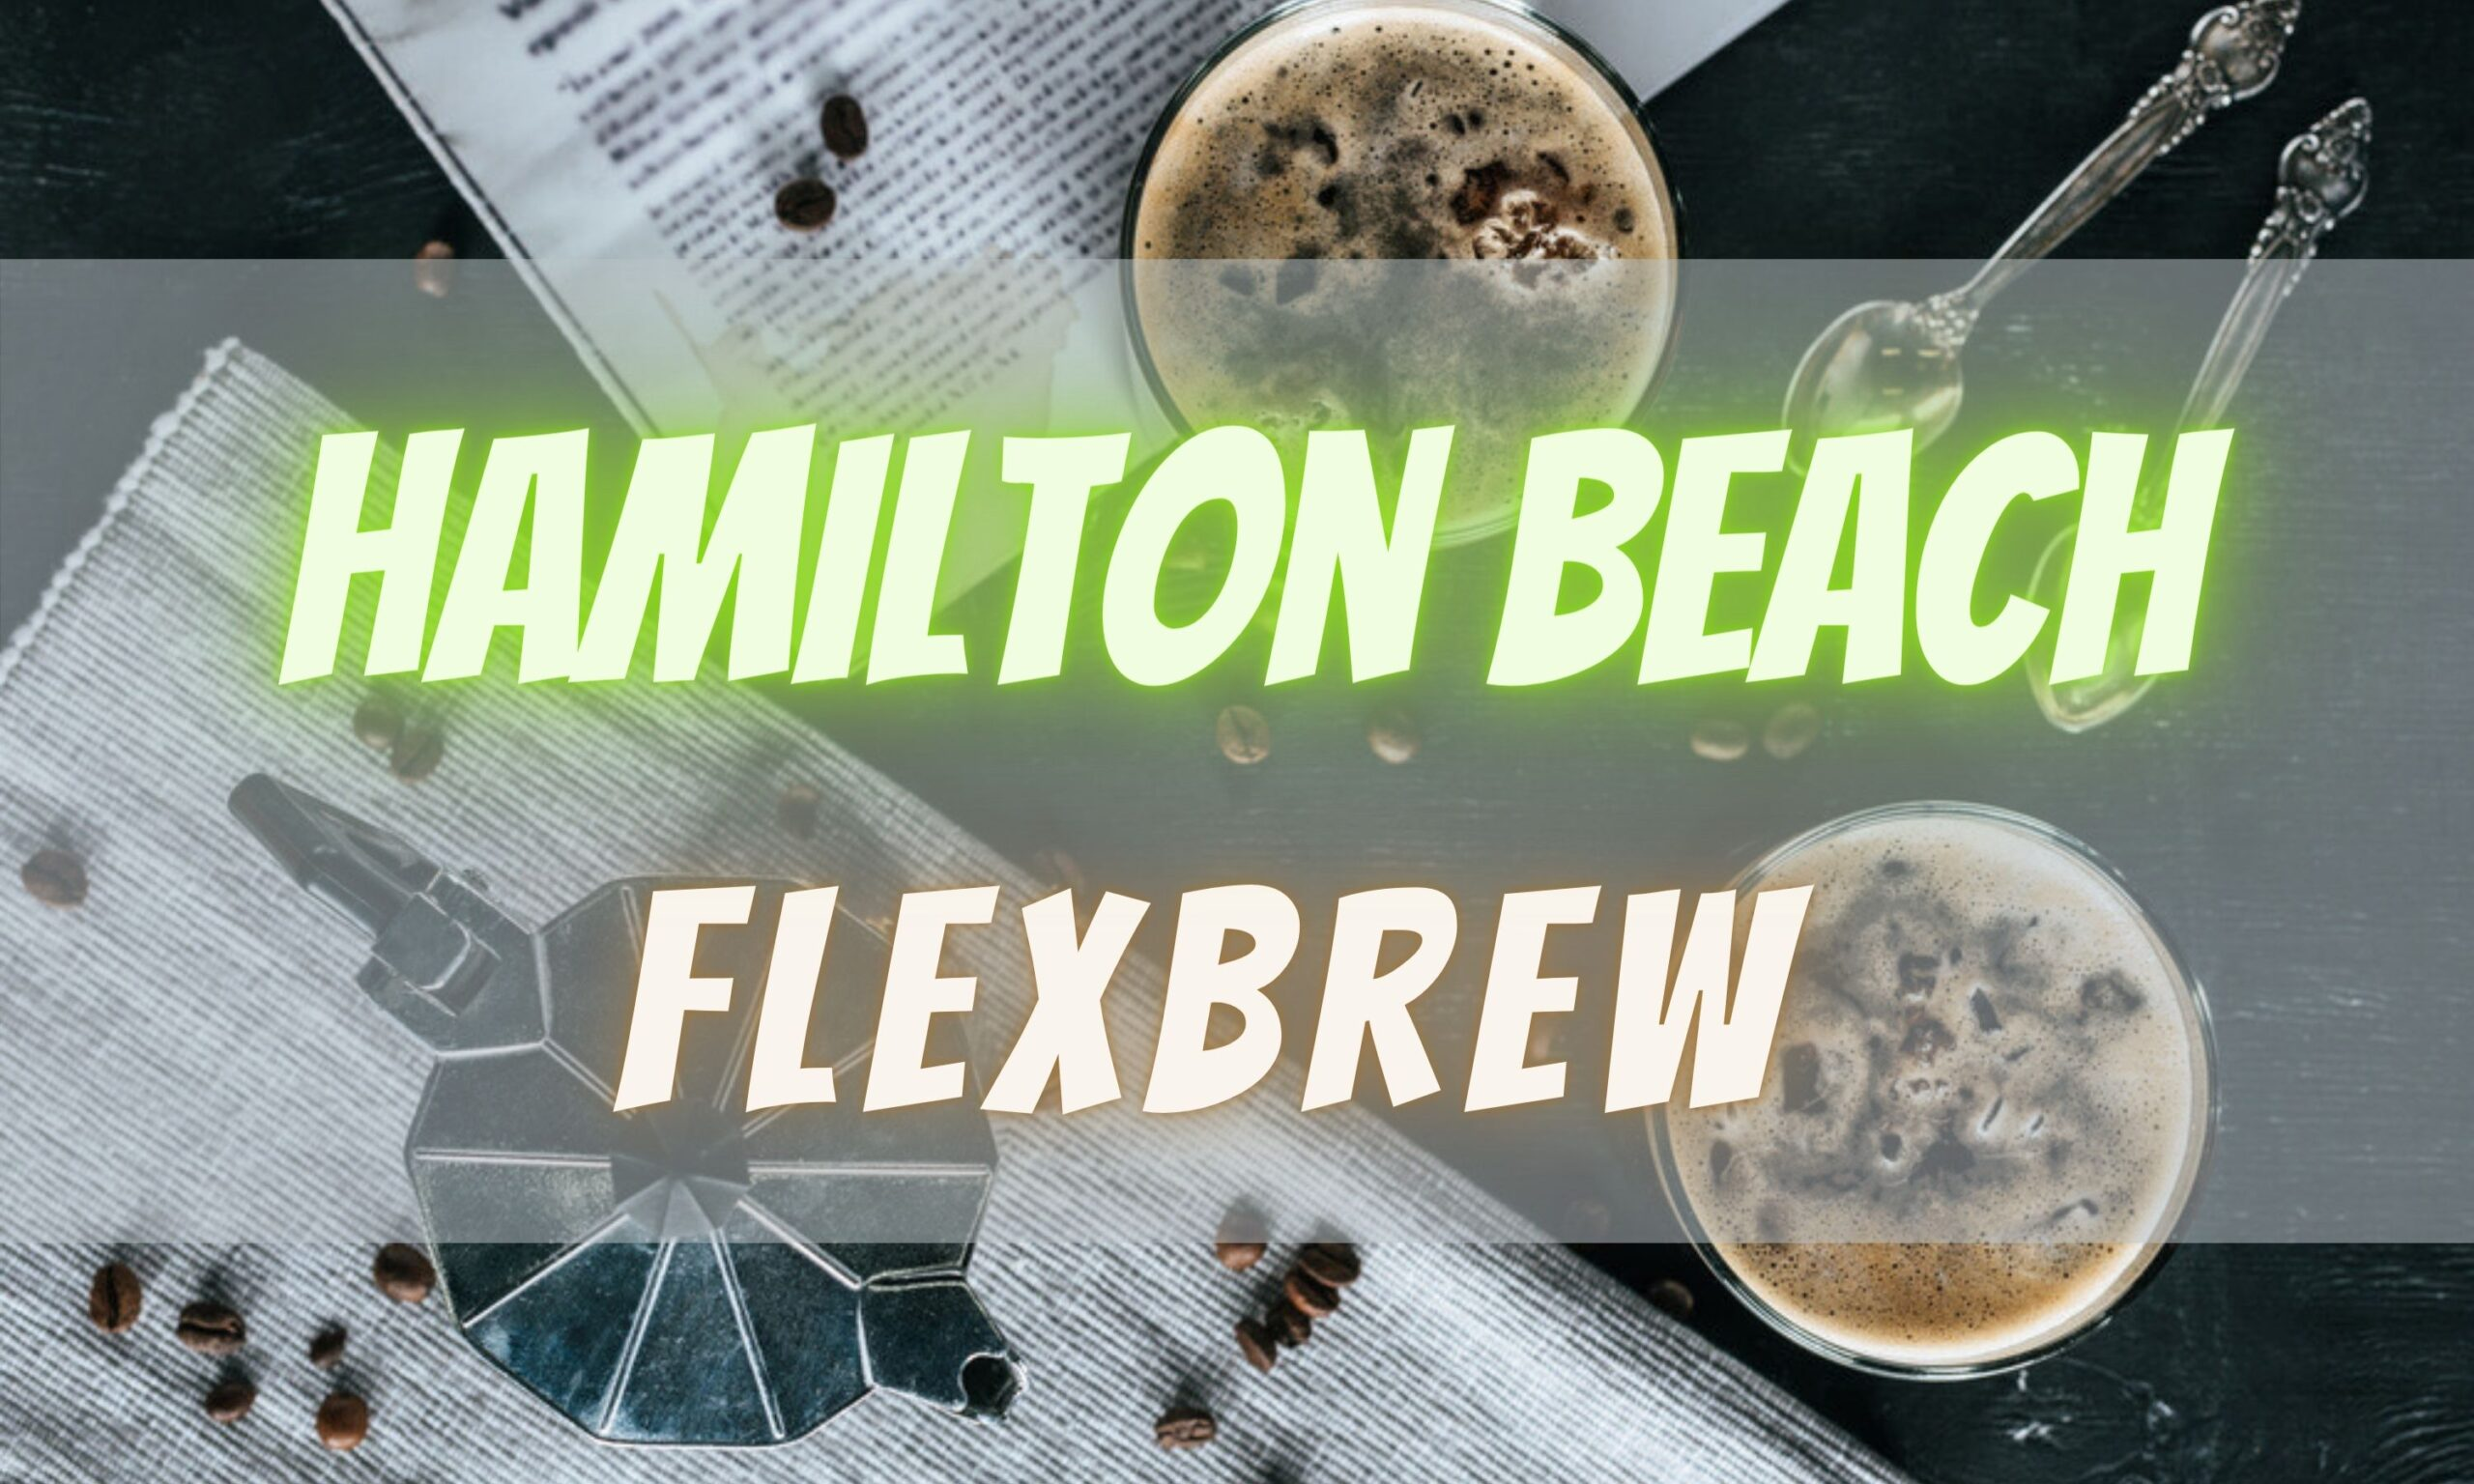 Hamilton Beach Flexbrew Feature Image